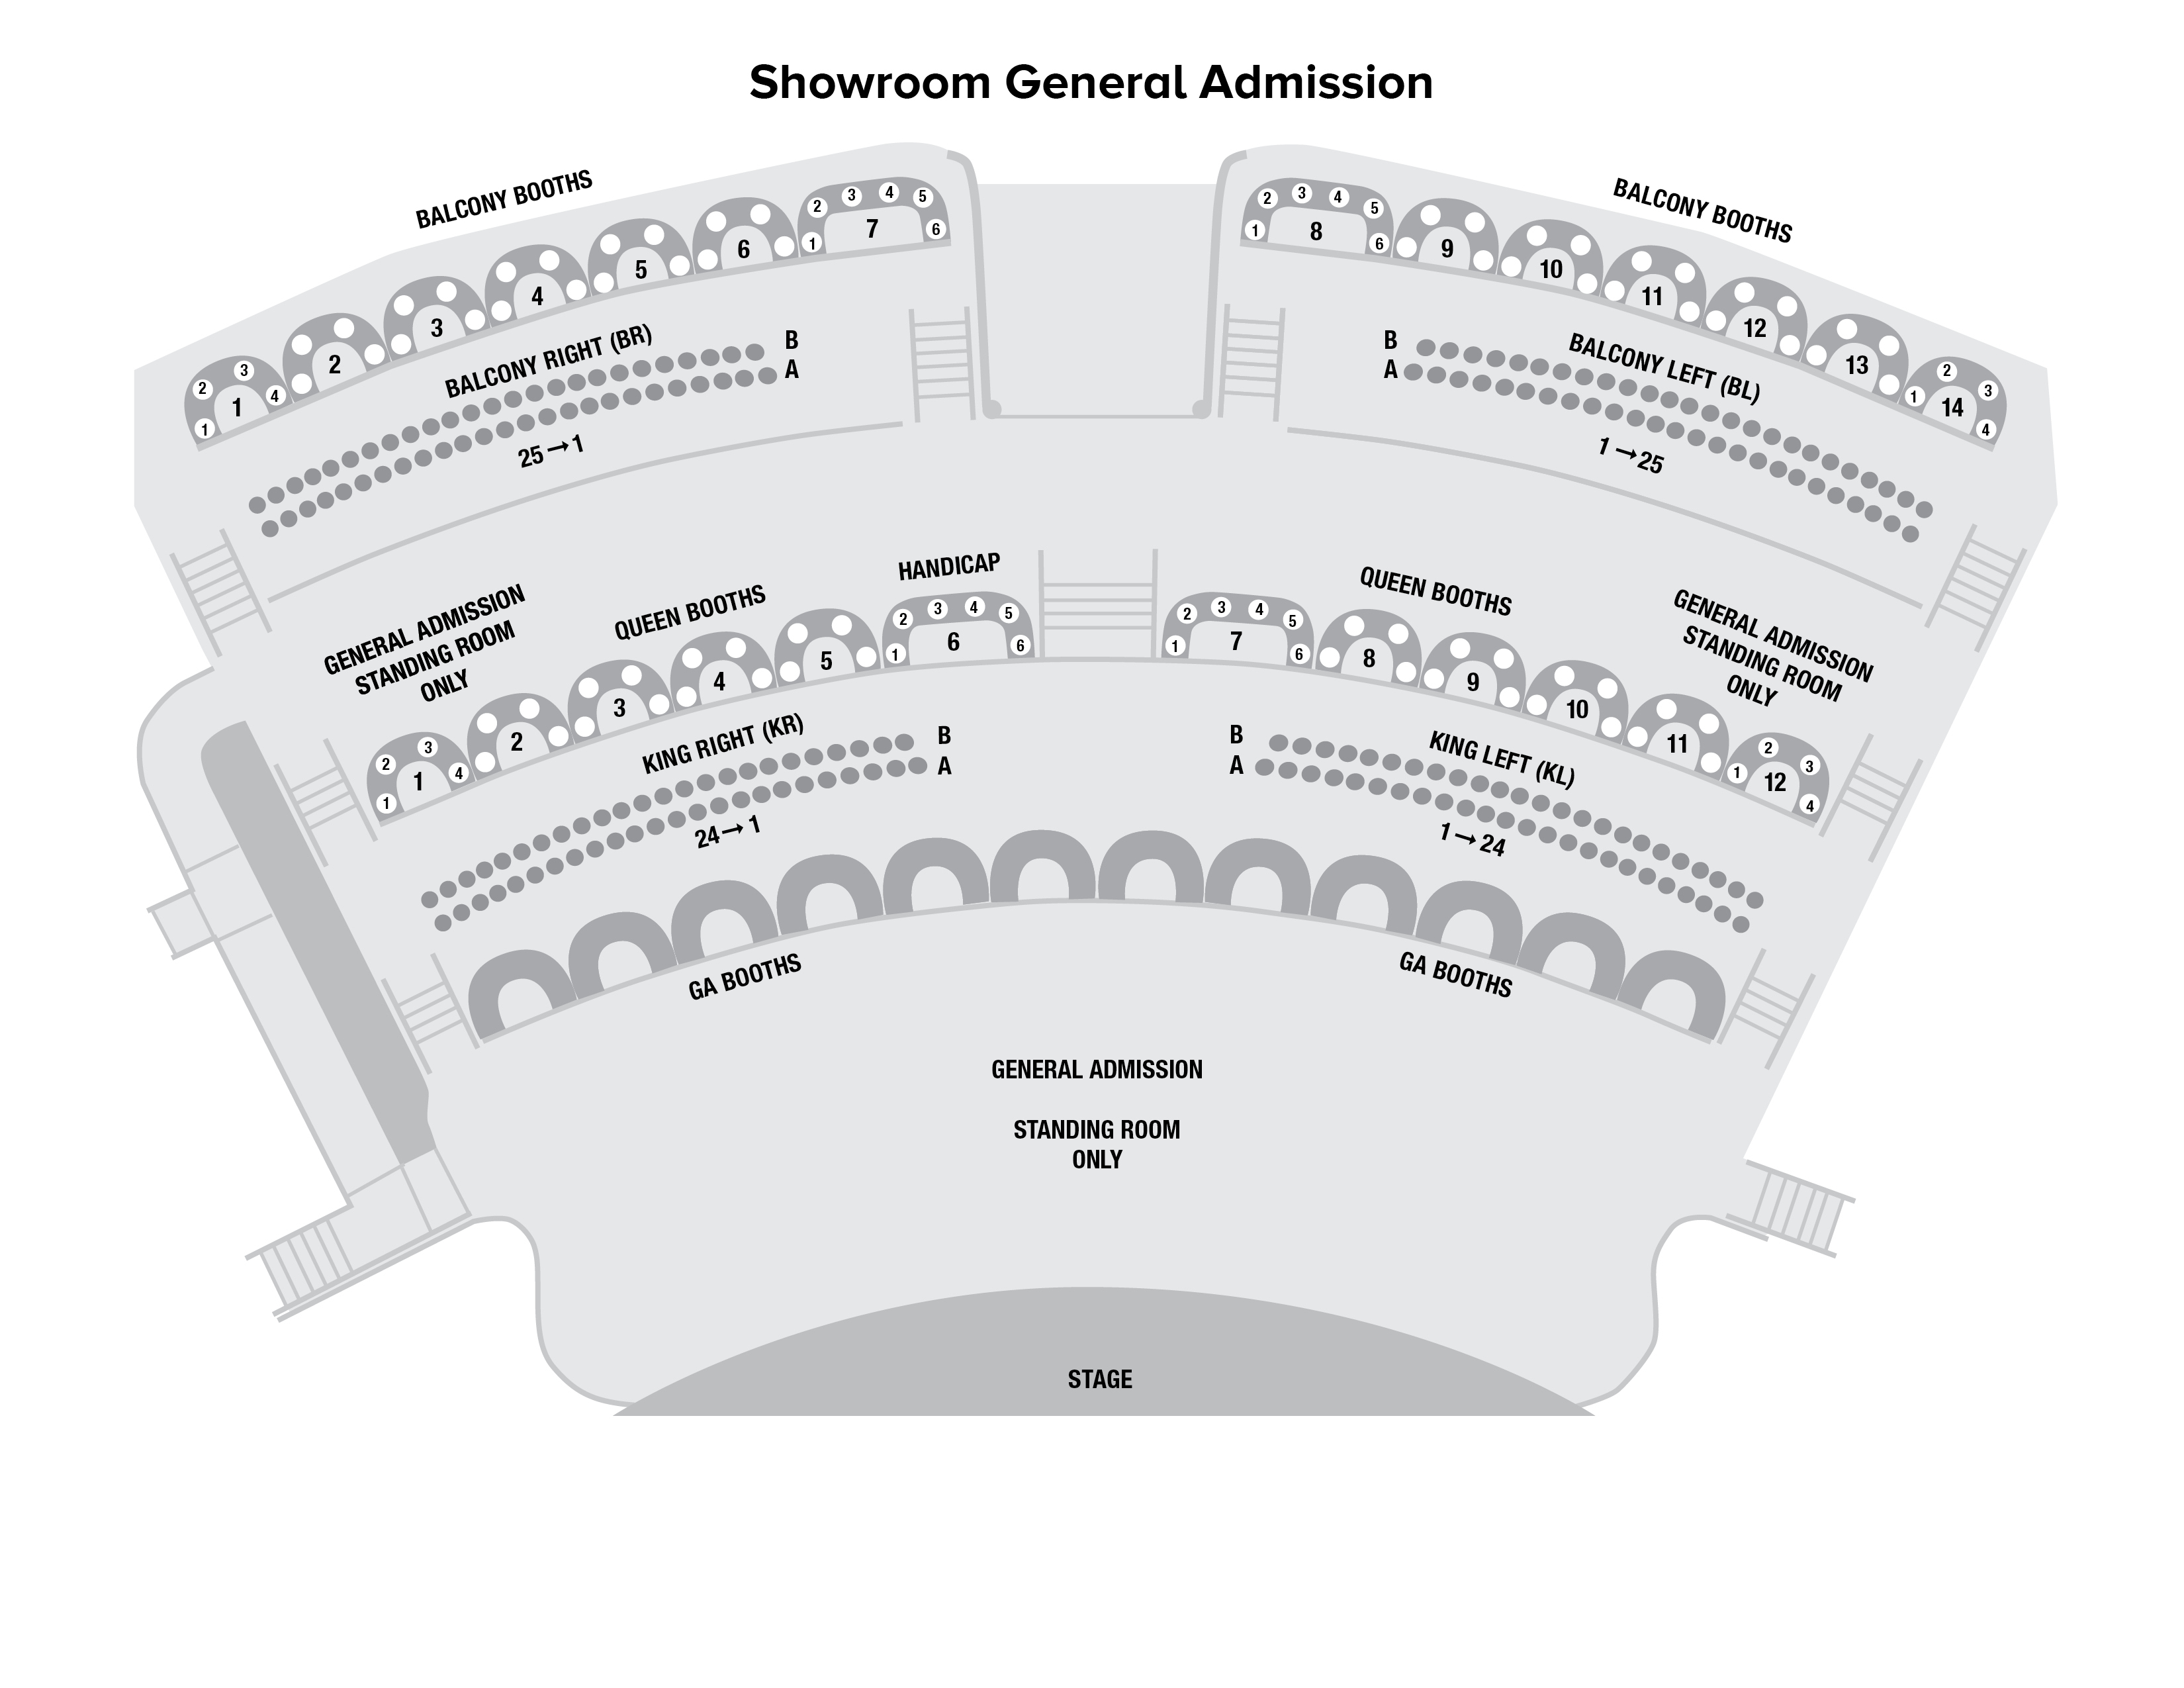 Showroom Genreal Admission